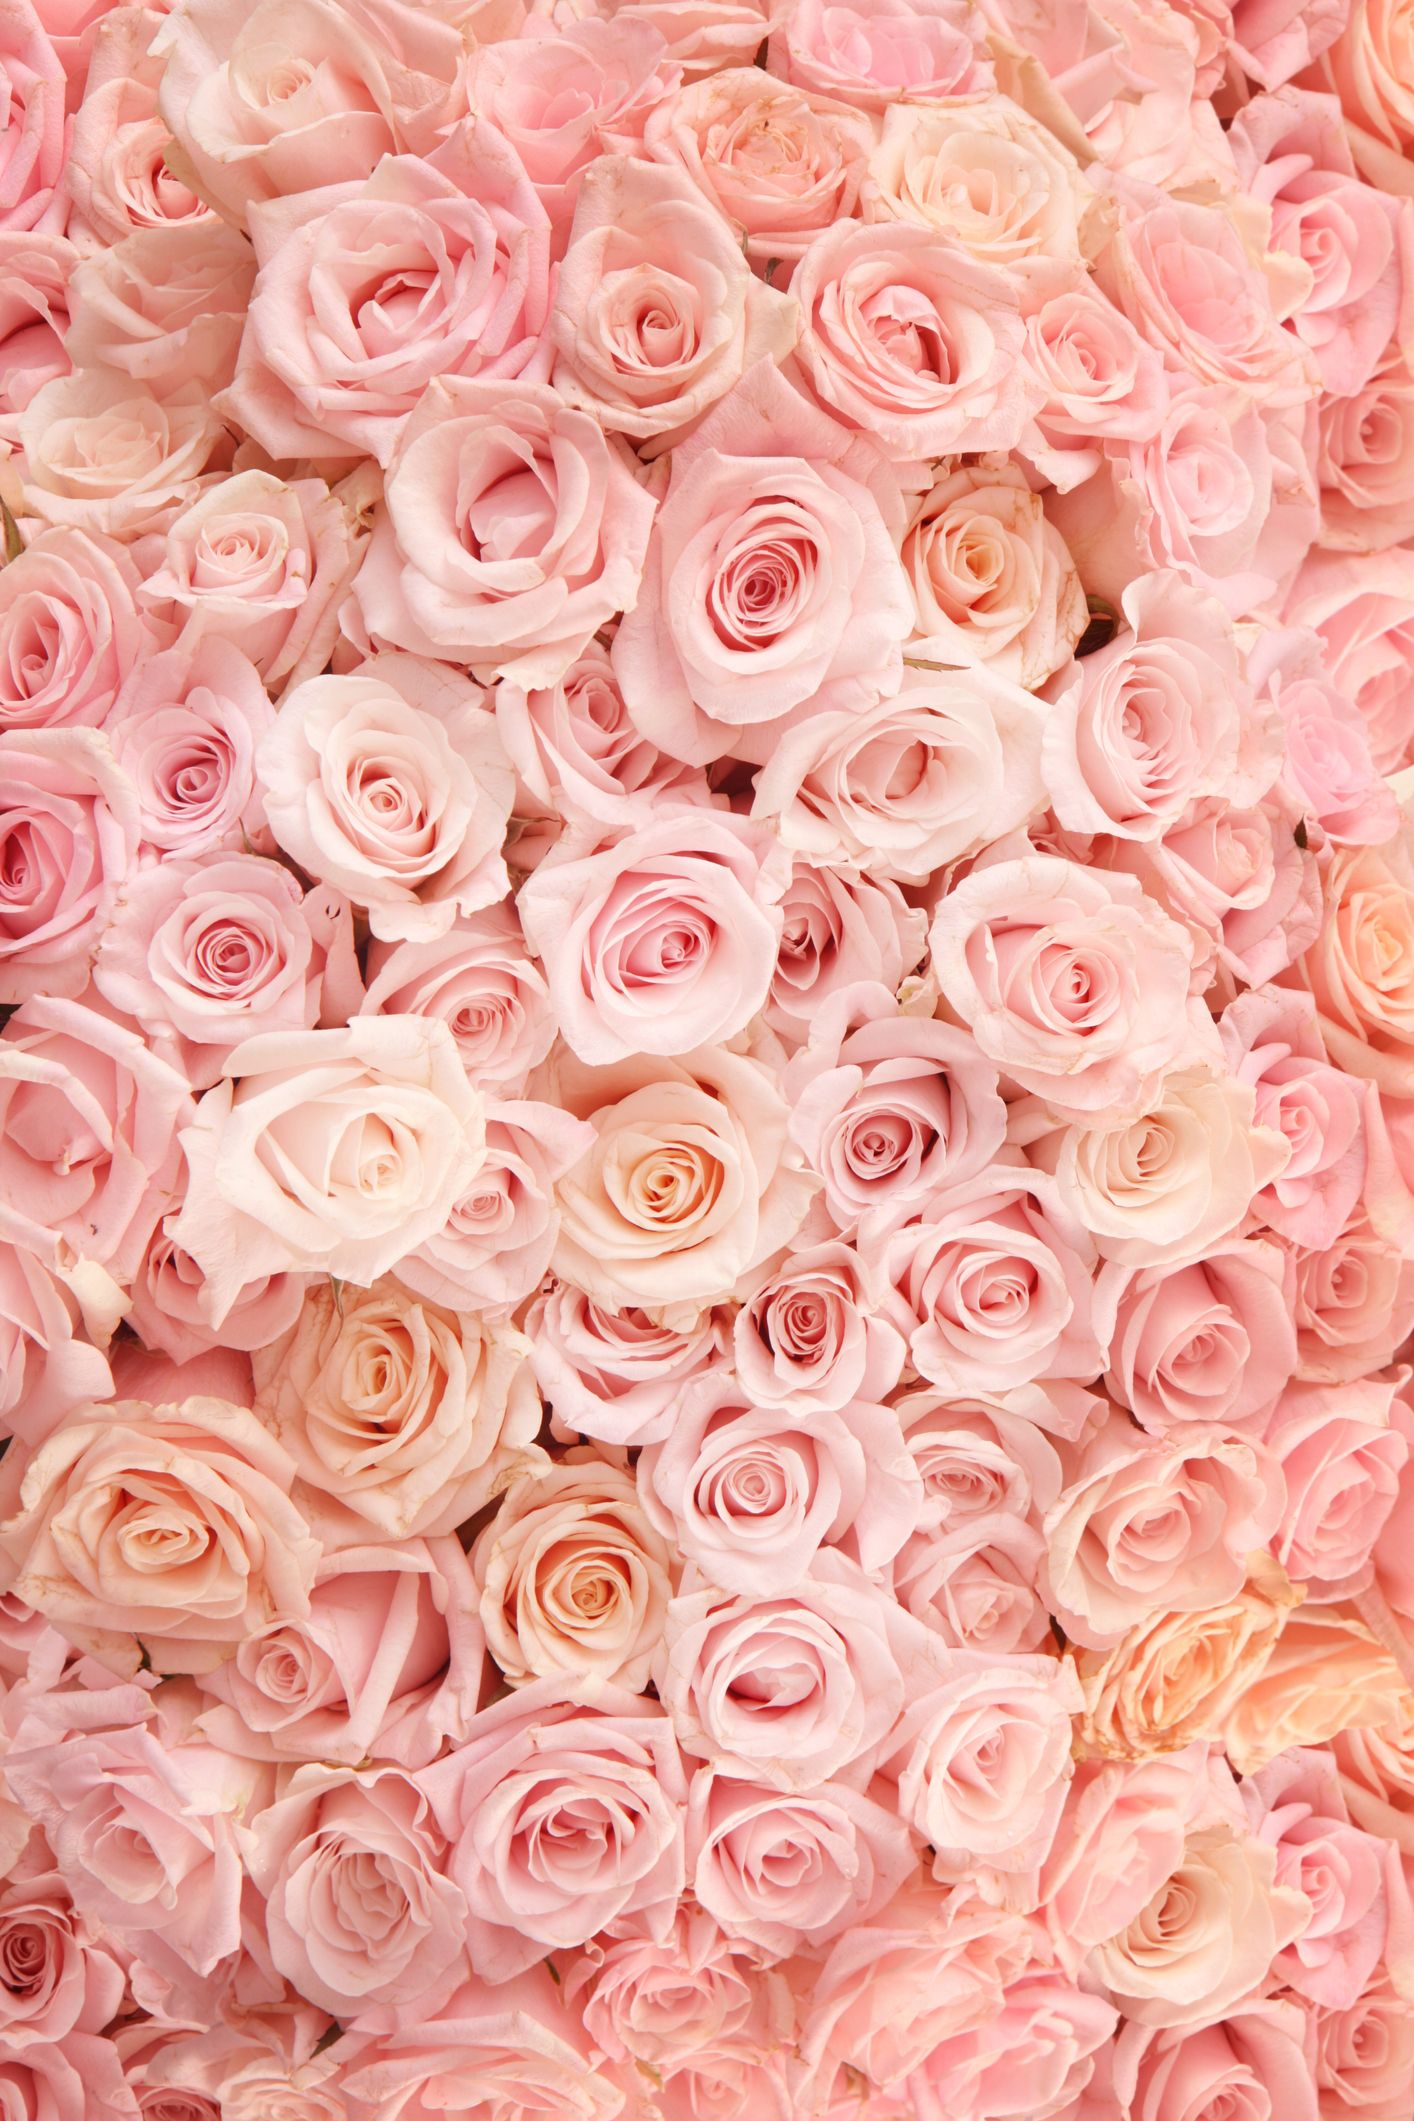 21 Special Rose Color Meanings - Rose Flower Meanings for Valentine's Day